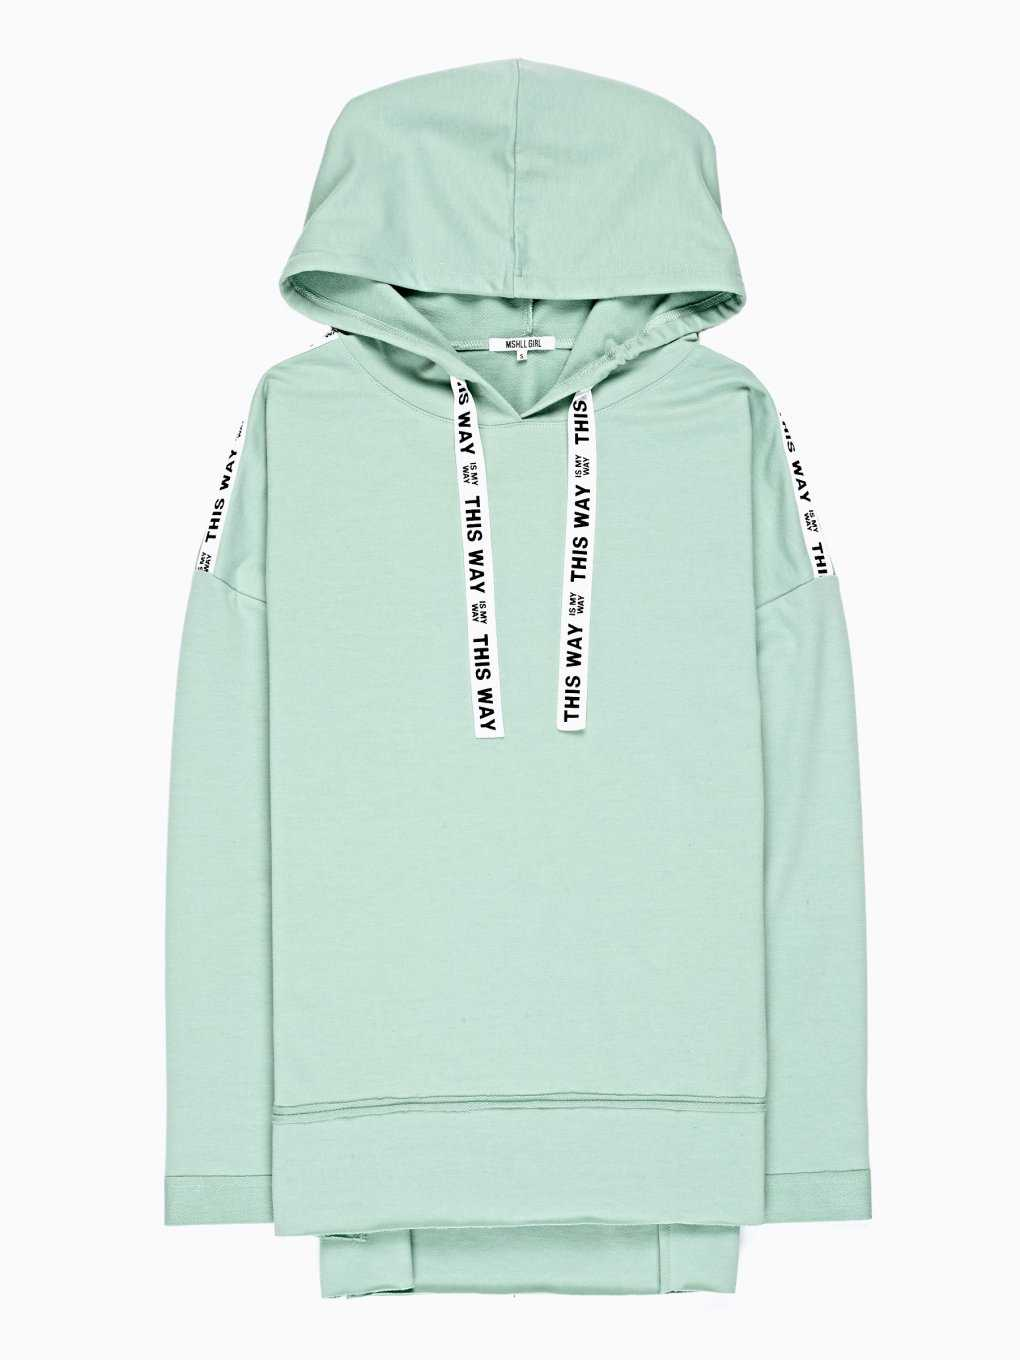 HOODIE WITH PRINTED TAPES